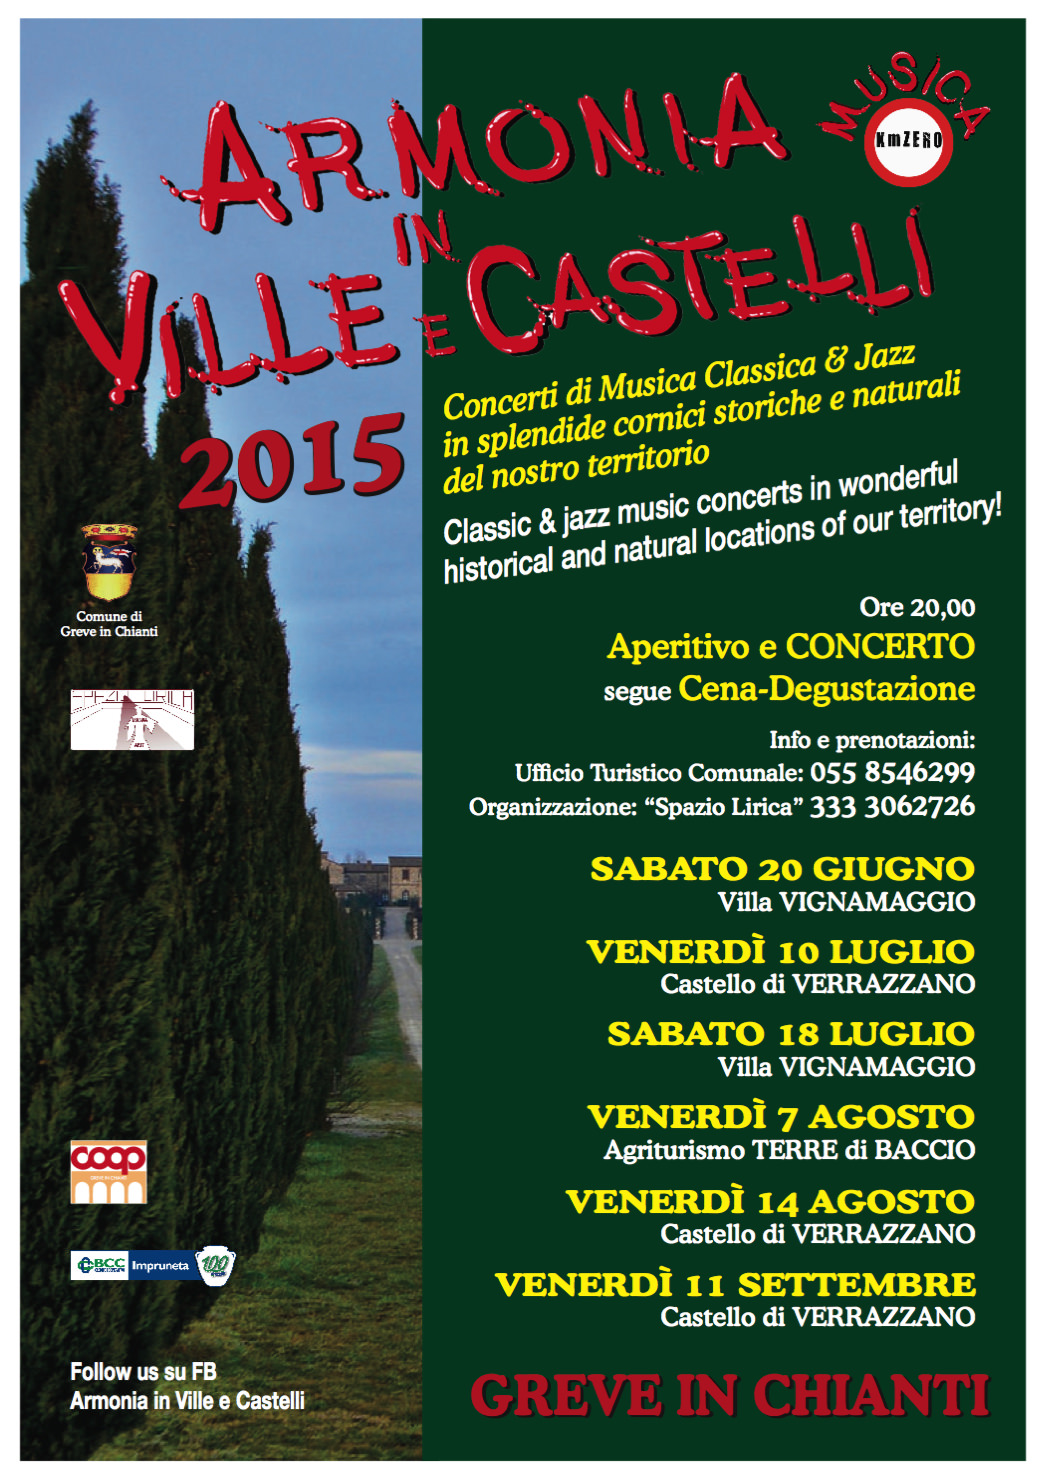 Armonia in Ville e Castelli 2015 copia.jpeg